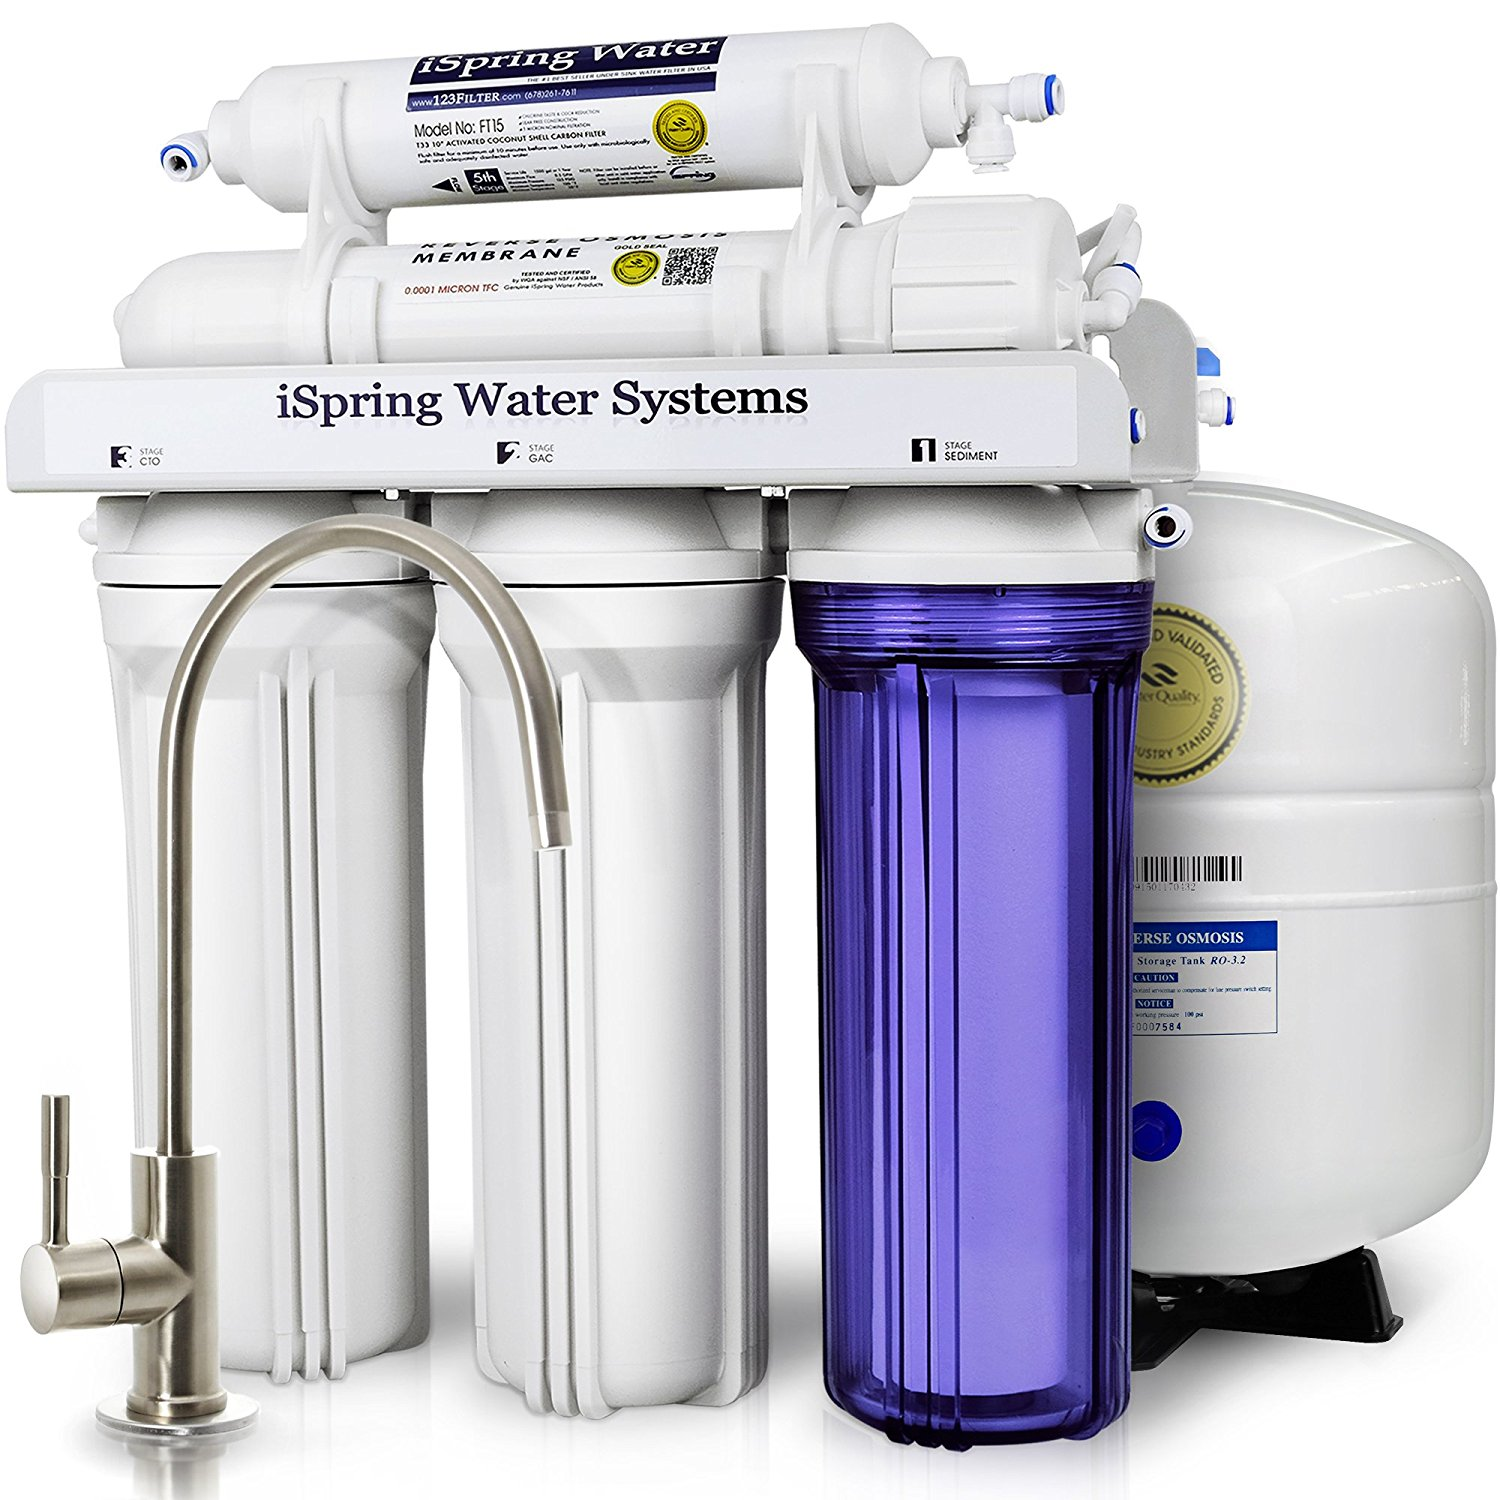 comparison of top 5 residential water filtration systems